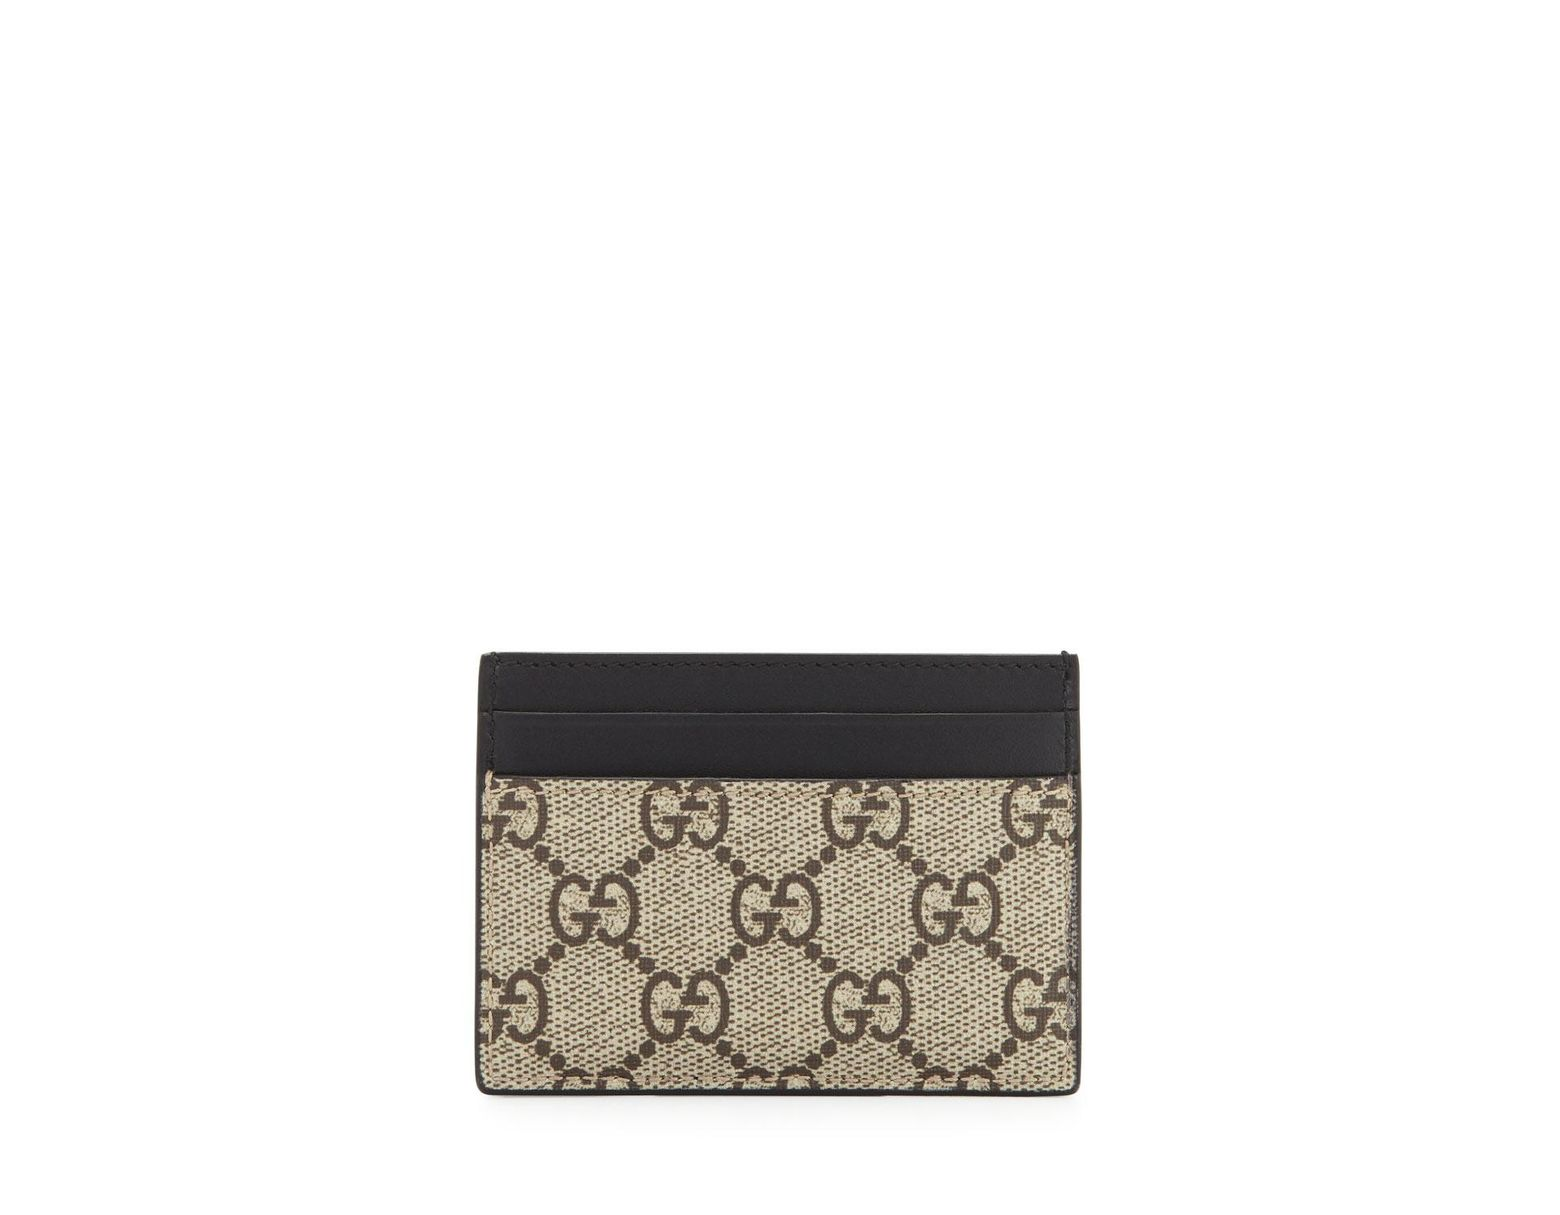 ffc391a741ef Gucci. Women's Natural Bestiary Bee-print GG Supreme Card Case. $290 From  Bergdorf Goodman. Free shipping ...